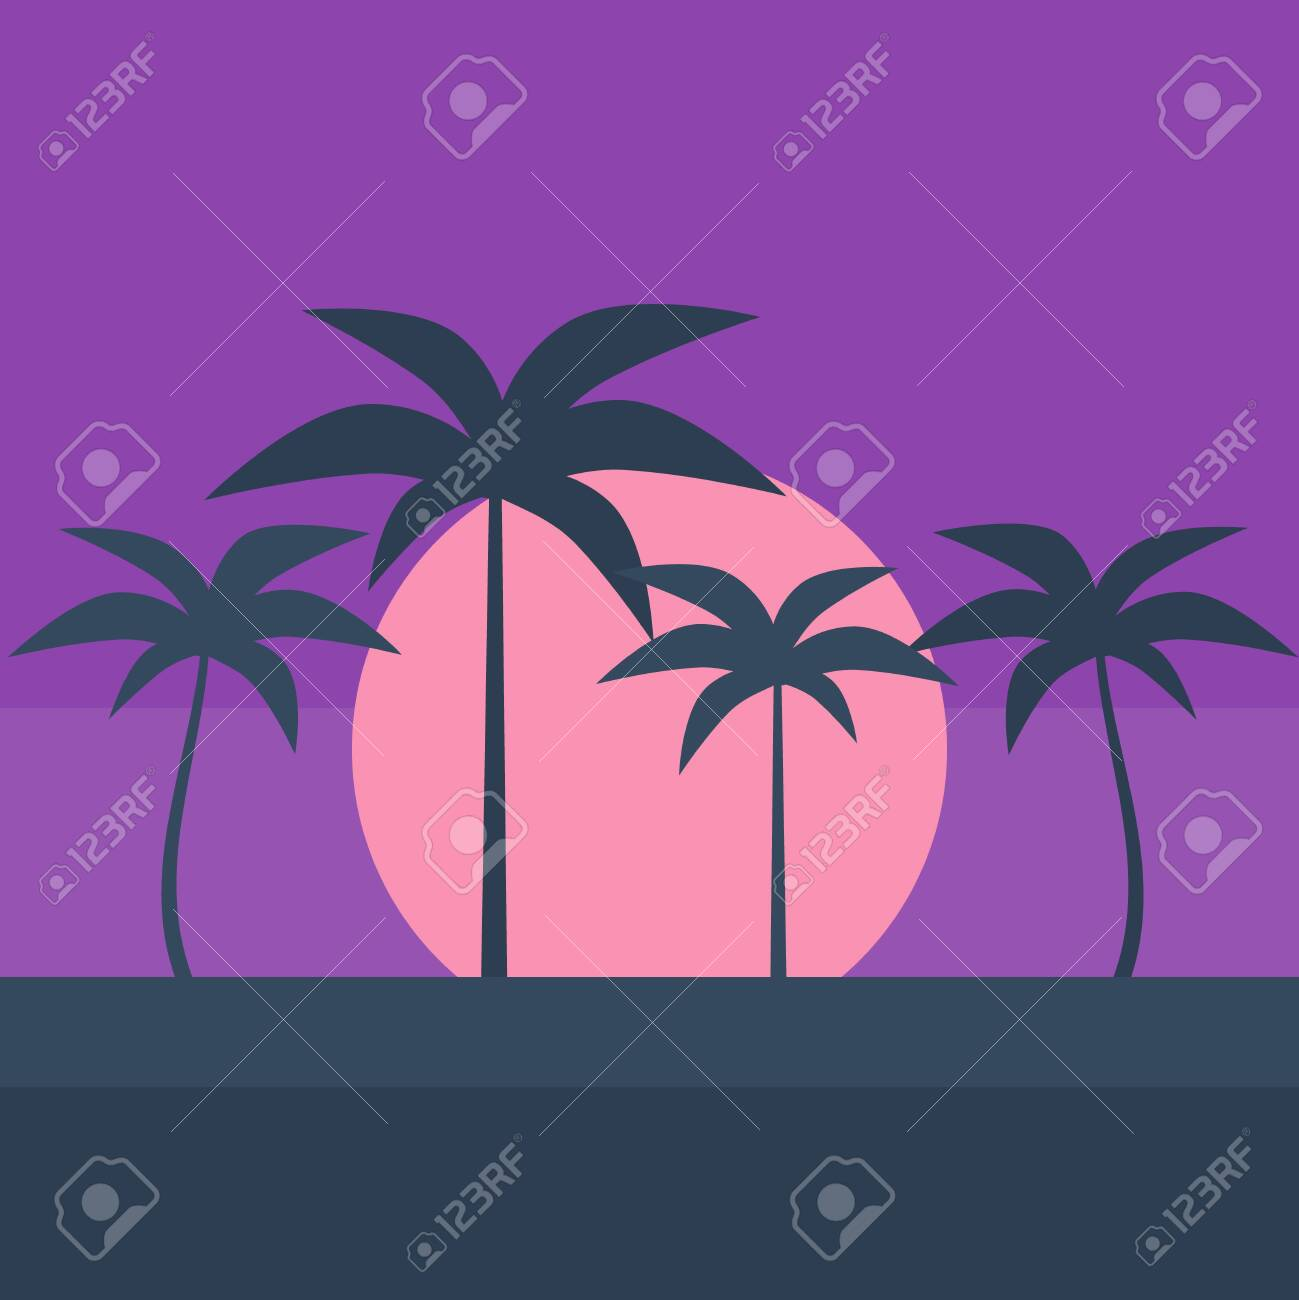 Retro Grid Background Vaporwave Background Vector Game Neon Royalty Free Cliparts Vectors And Stock Illustration Image 131458051